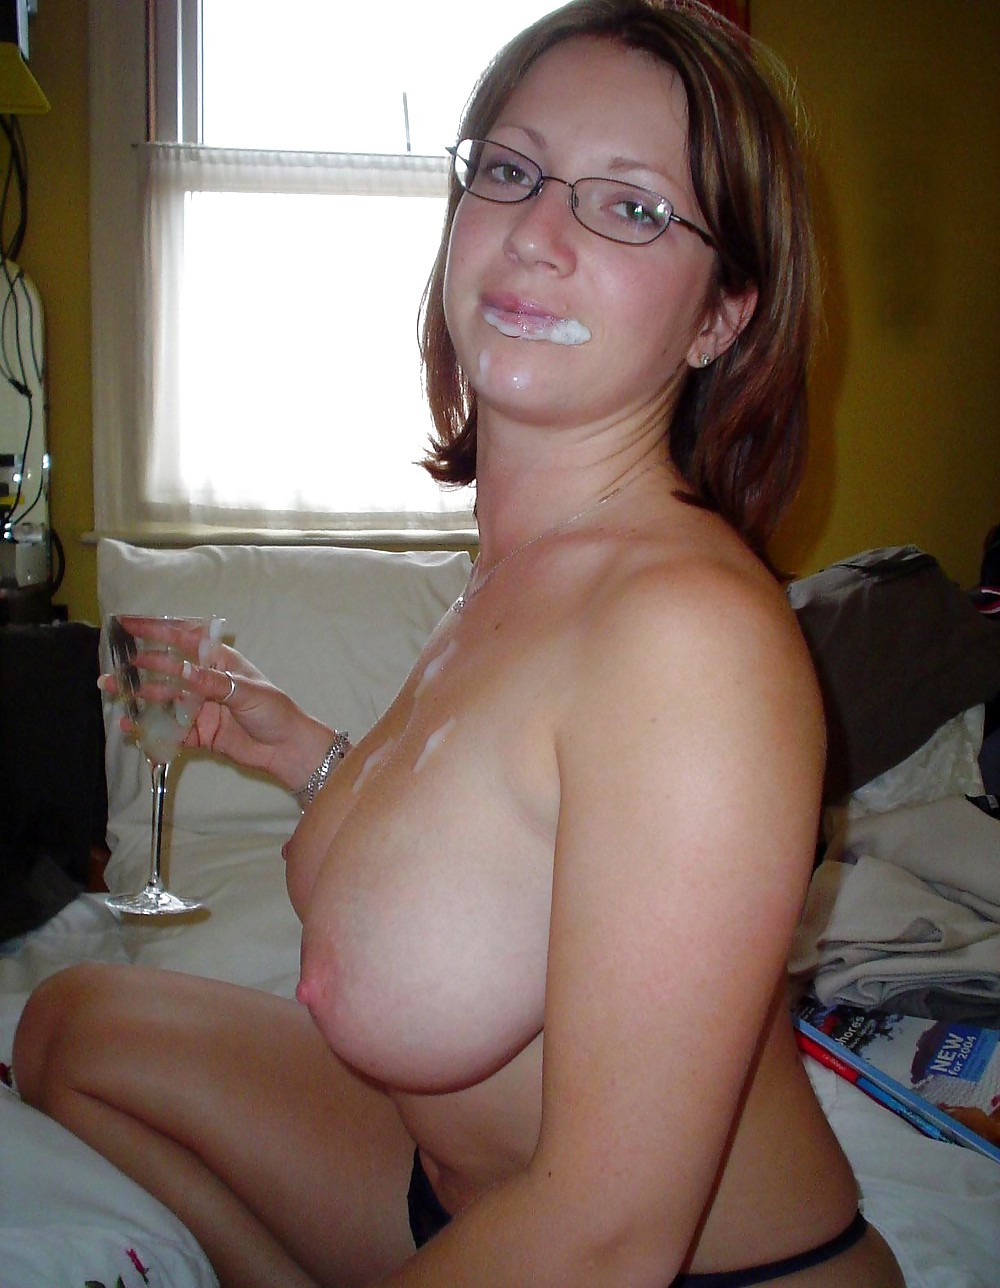 topless wifes amateur photos mature busty